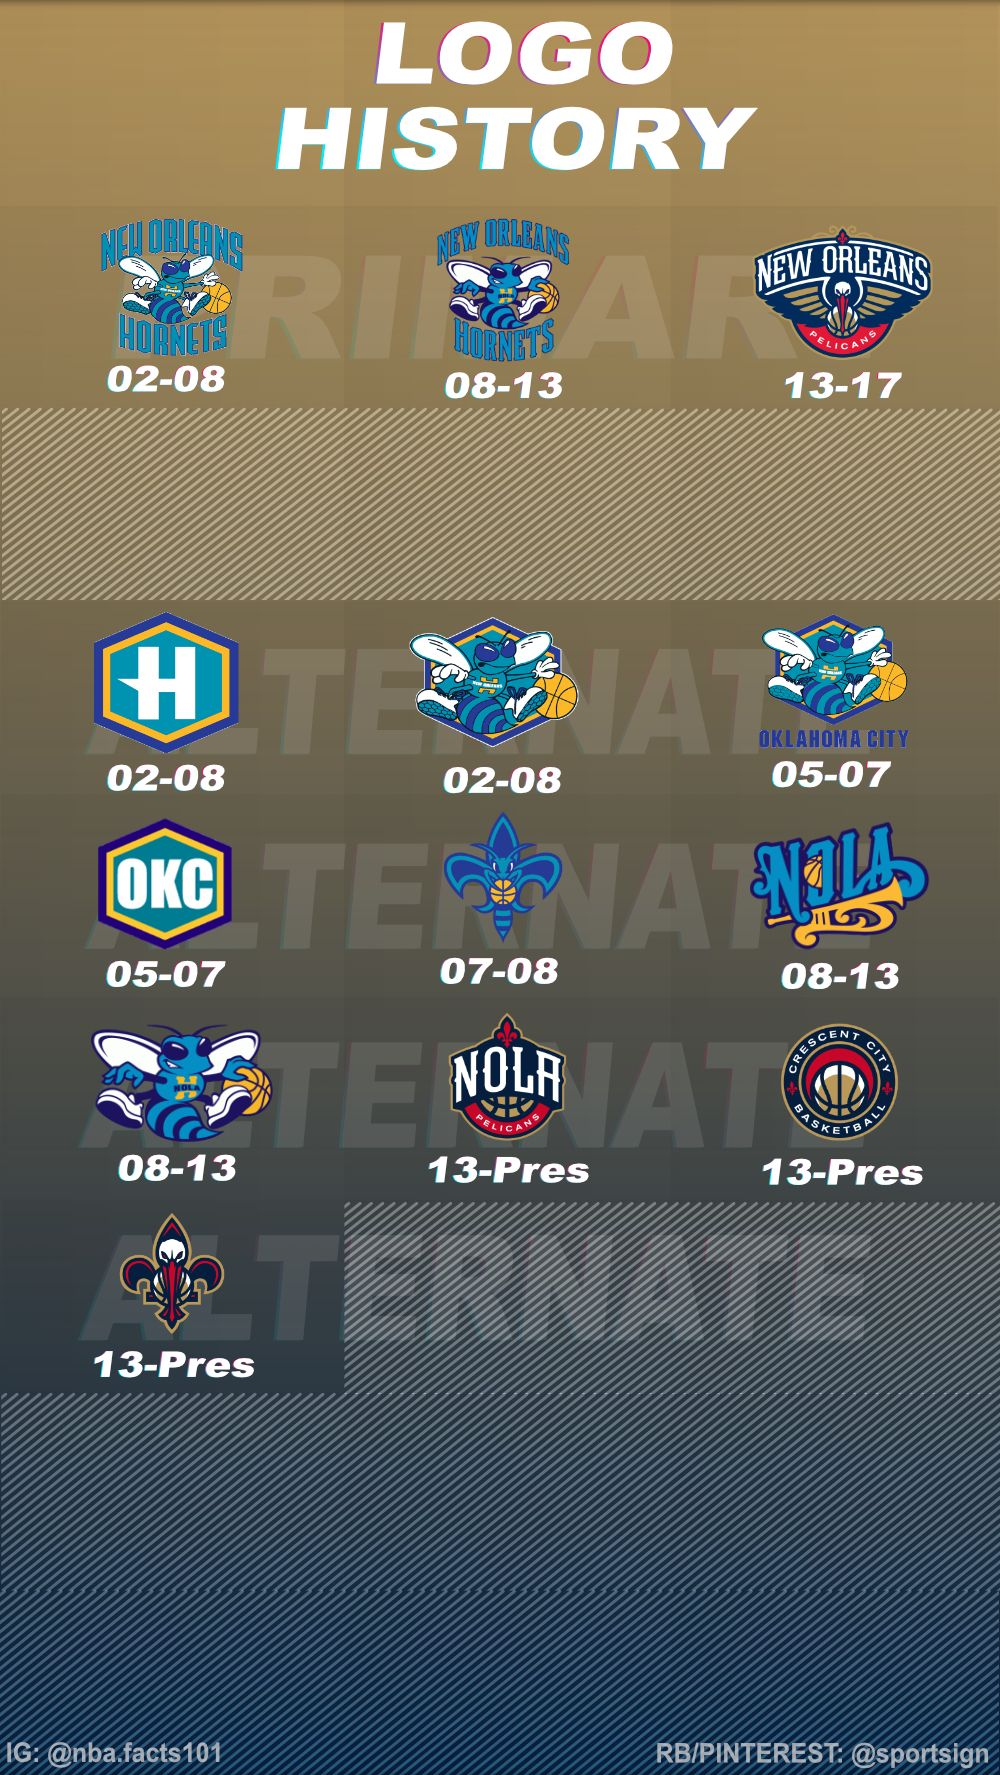 History Of The Nba Basketball Team New Orleans Pelicans